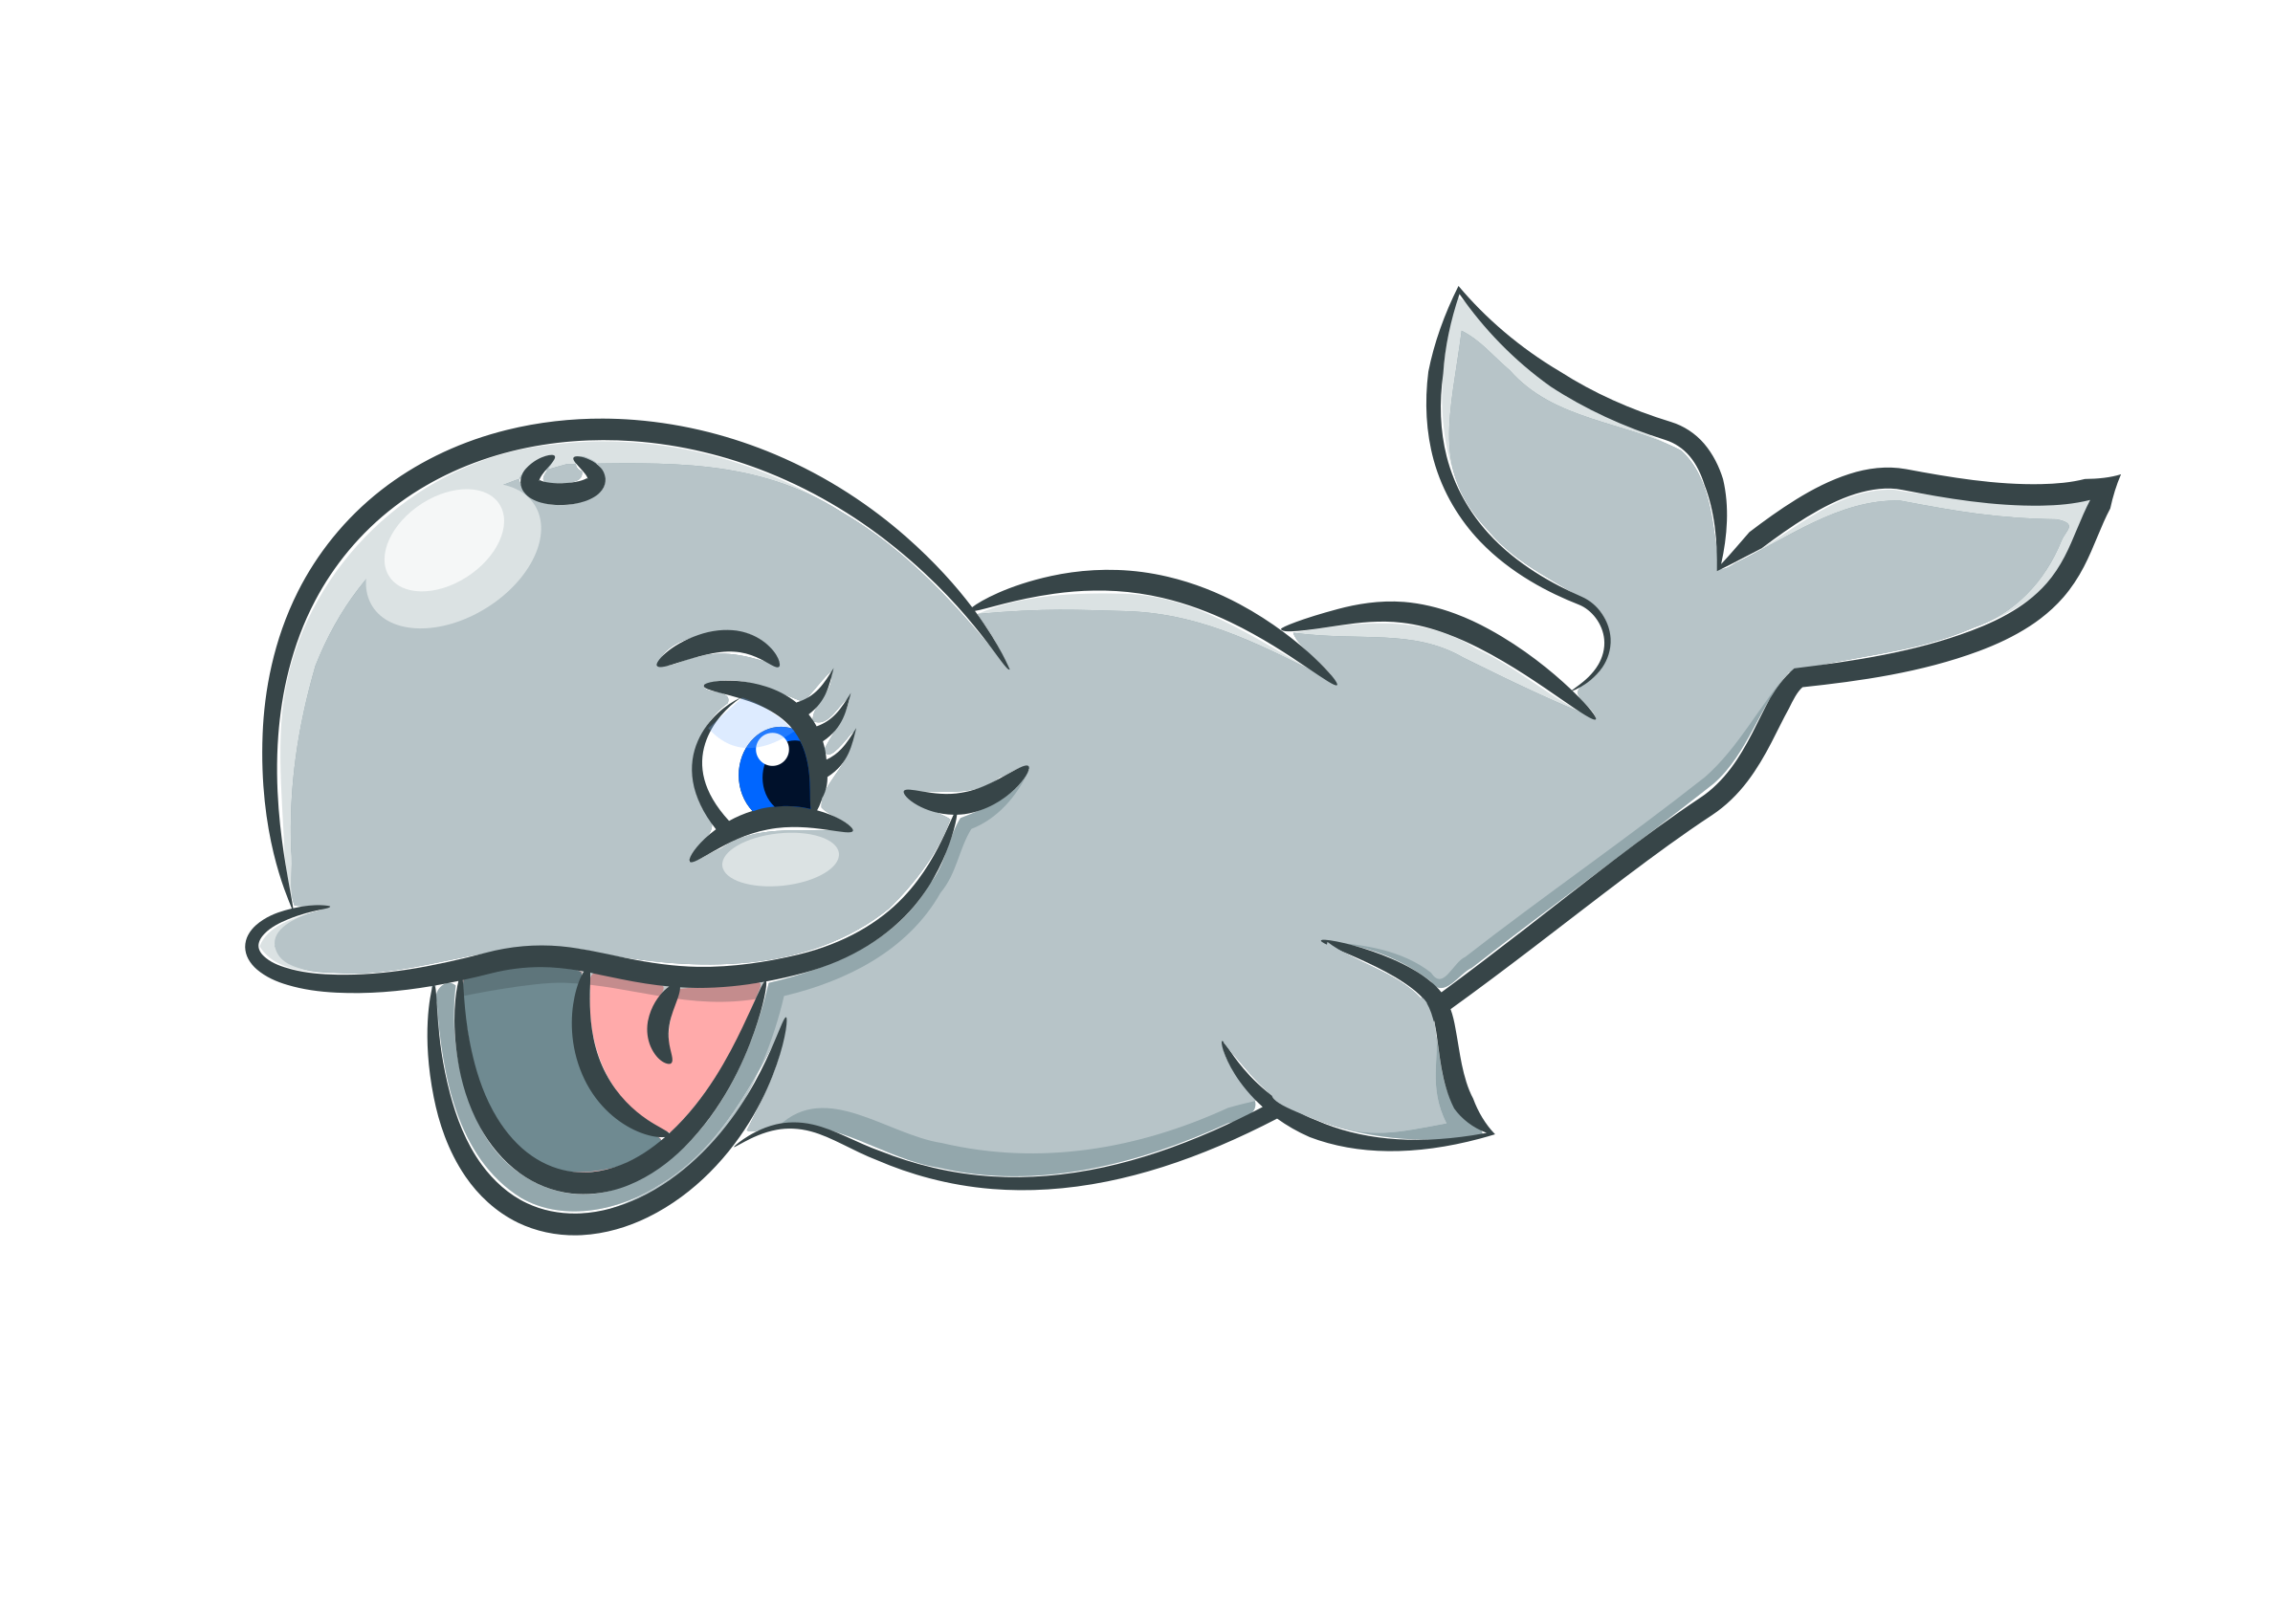 Big image png. Cute clipart whale